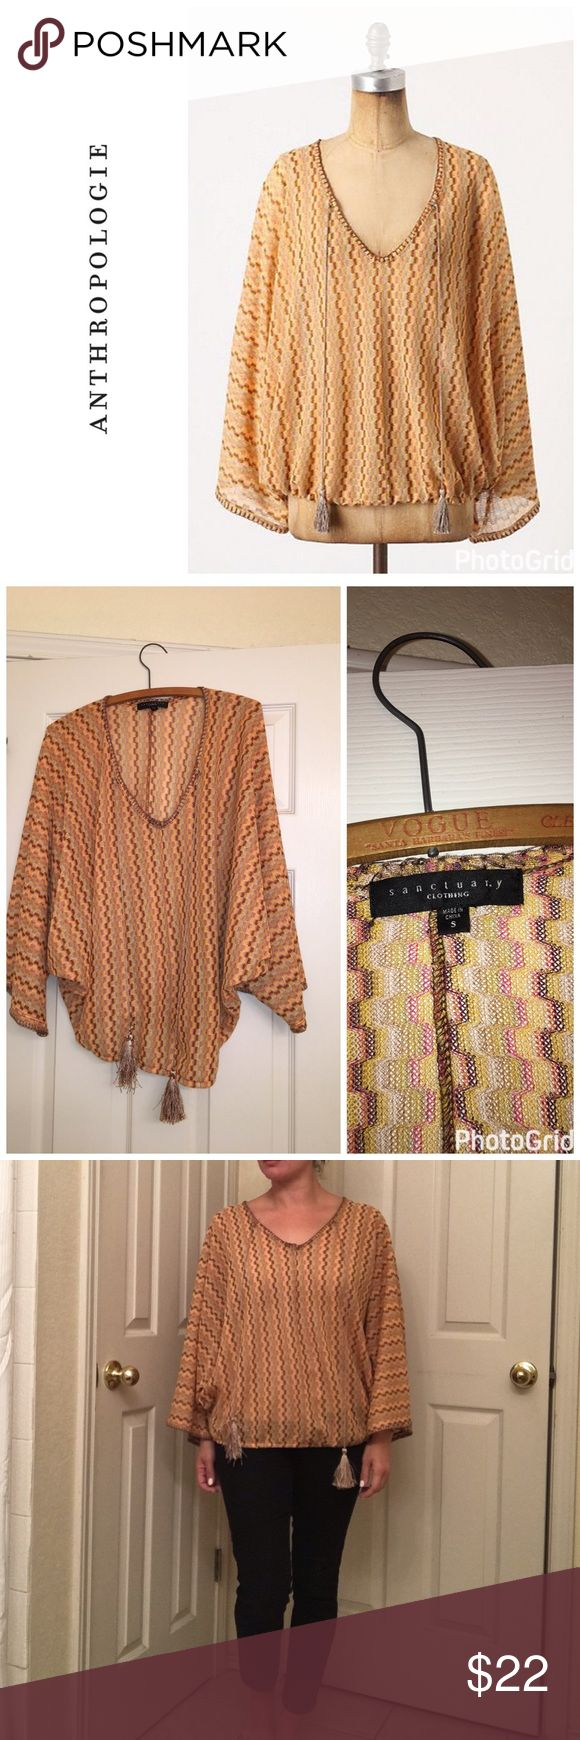 Anthropologie Maricopa Point top - poncho With tassel embellishments . Size s but will fit a size m easily . Top is in like new condition . Semi sheer so I am wearing a nude cami underneath . Will bundle for 10% off Anthropologie Tops